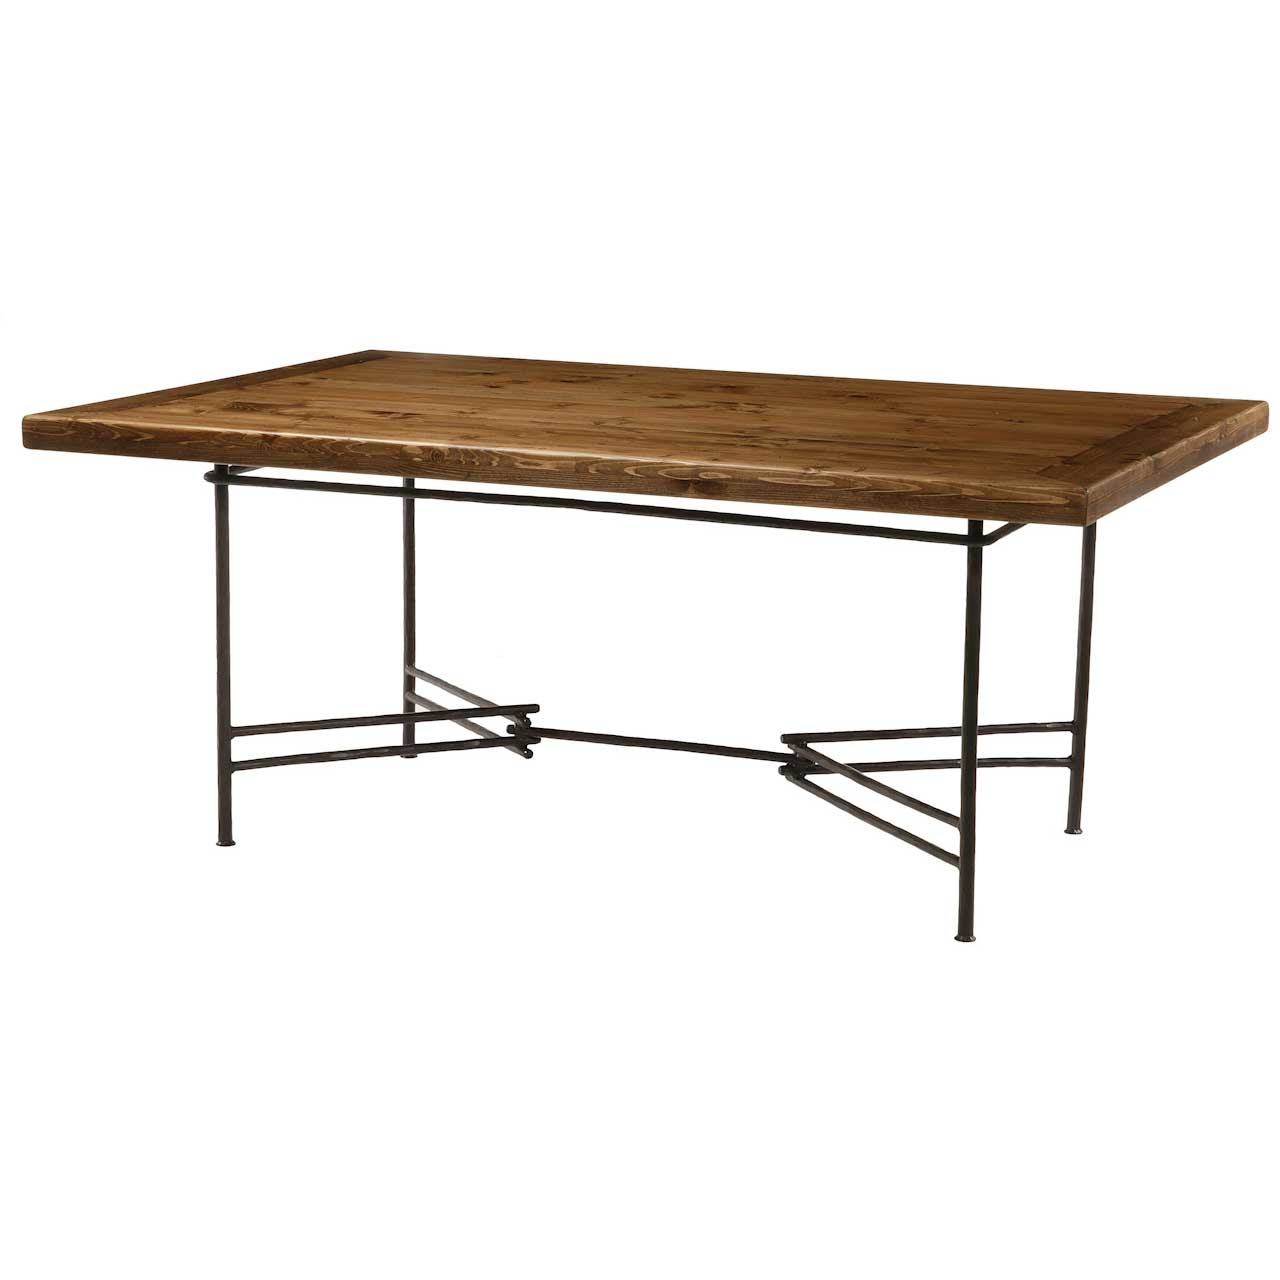 Dining table wood dining table wrought iron base - Dining table images ...